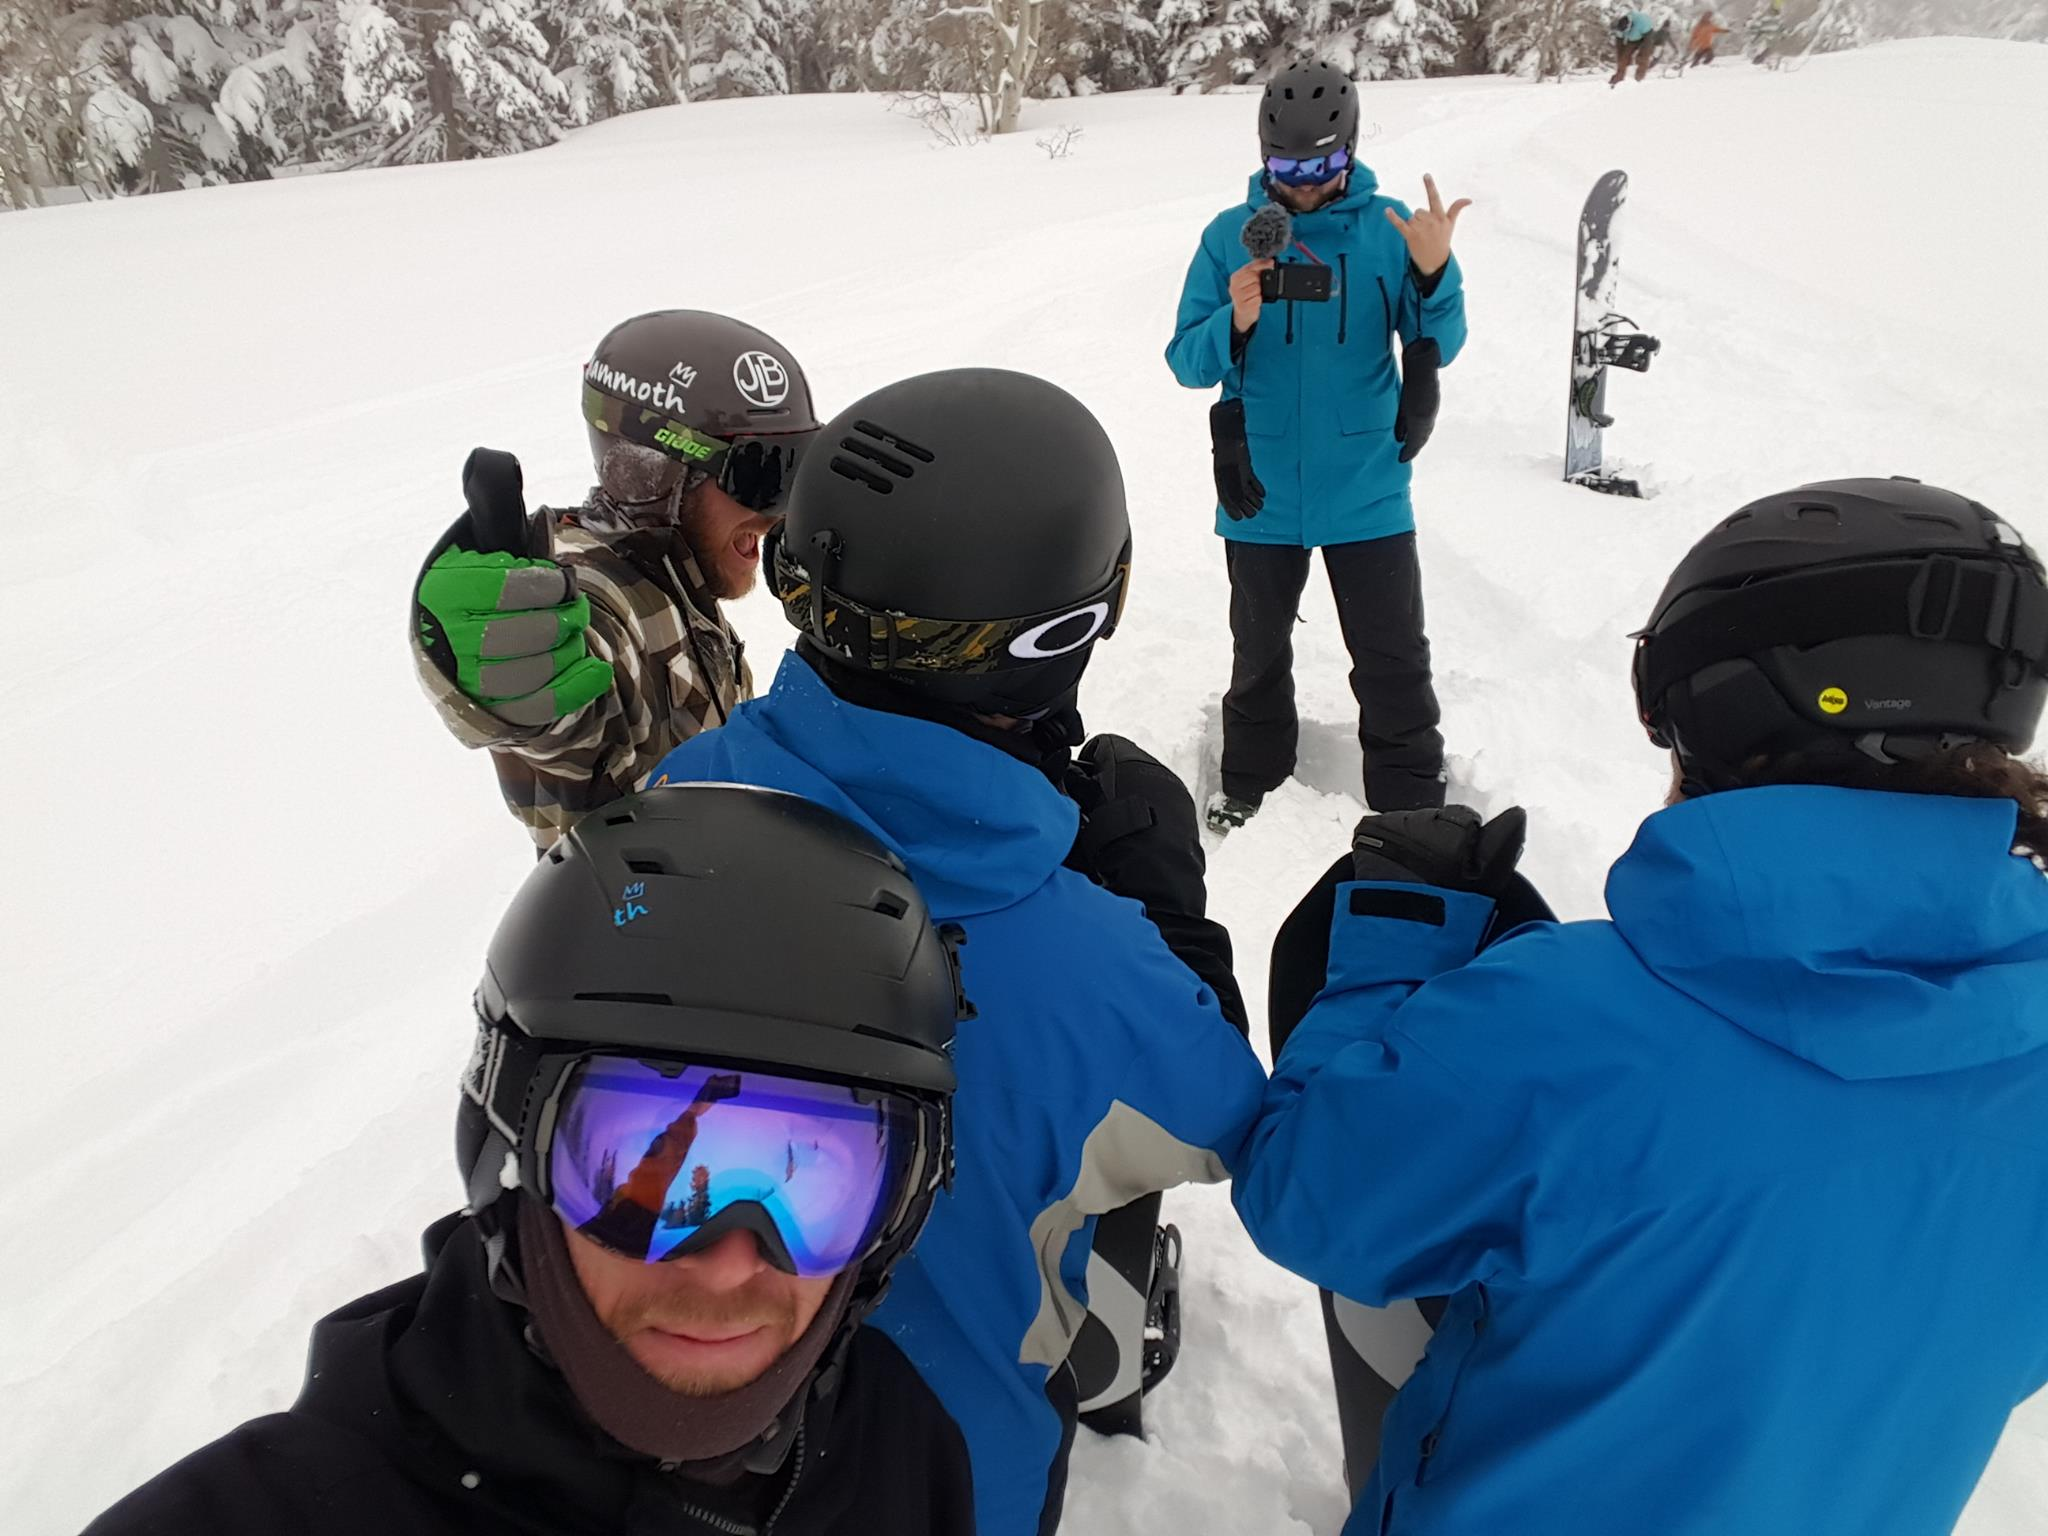 The Good Ride >> About The Good Ride Snowboard Gear Buying Guide